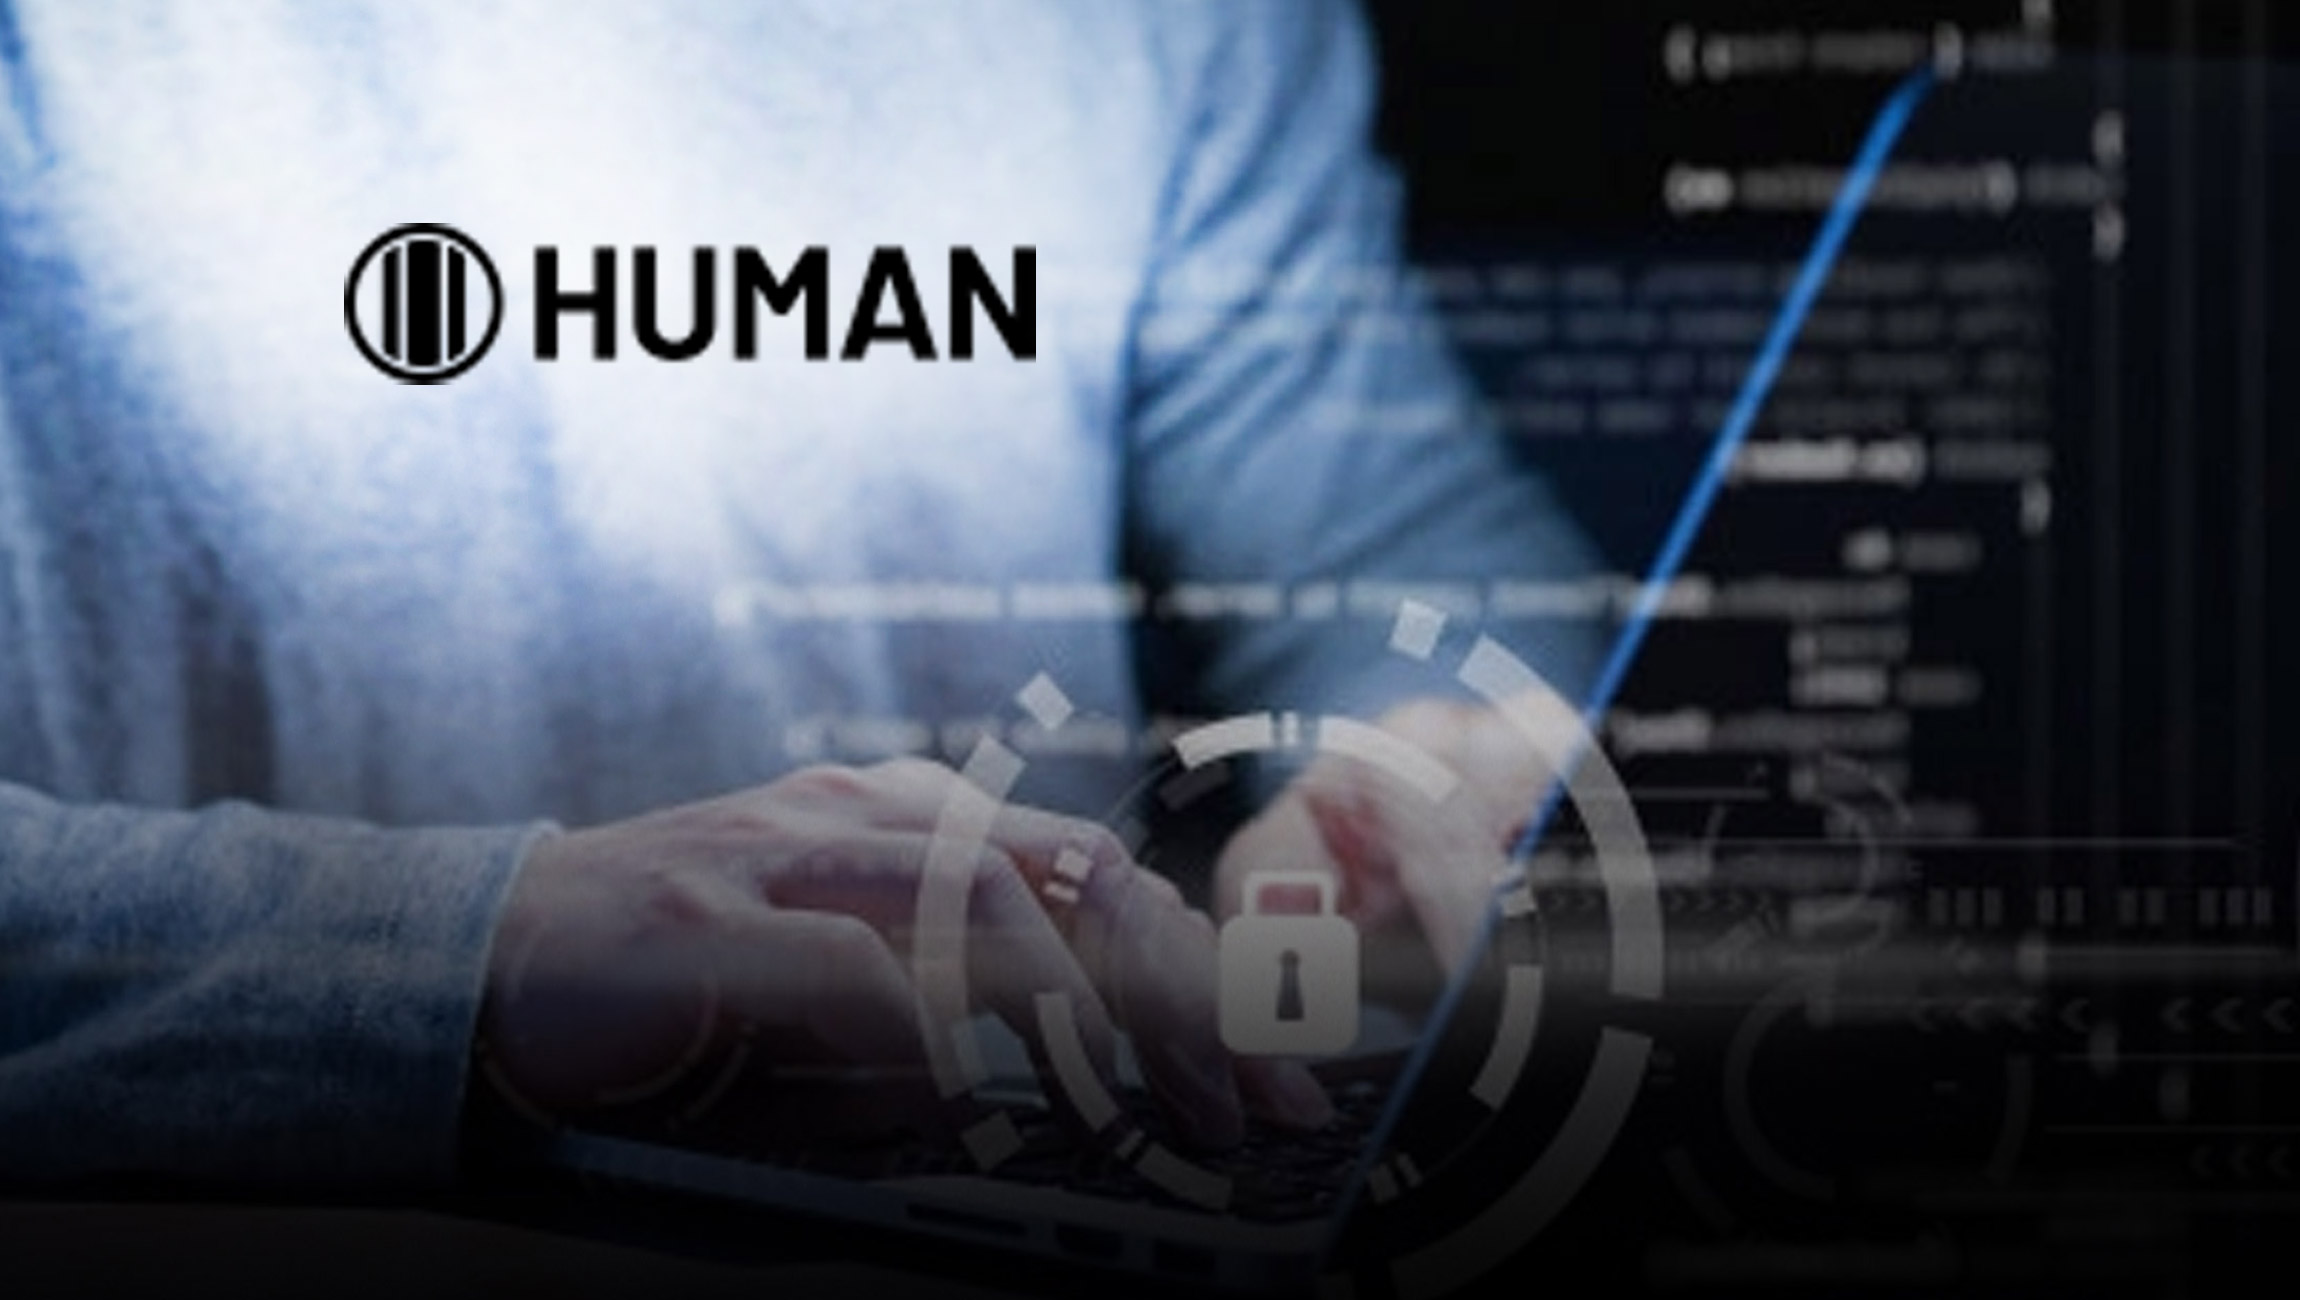 HUMAN-Expands-Enterprise-Protection-from-Sophisticated-Bots-and-Automated-Attacks-With-Newly-Named-BotGuard-Solution